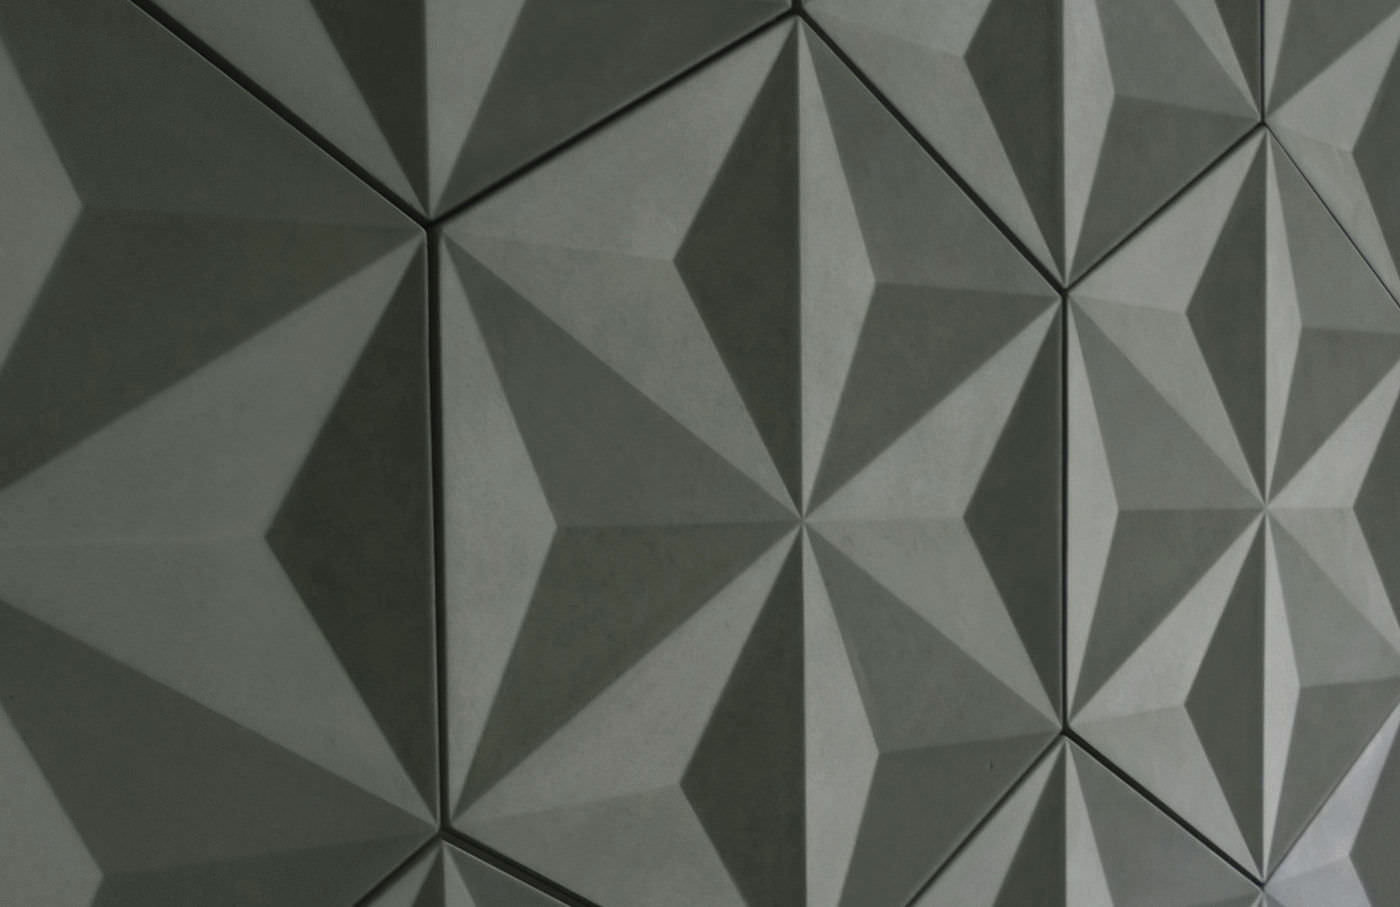 Indoor tile / wall / concrete / geometric pattern - JAPANESE GEO ...